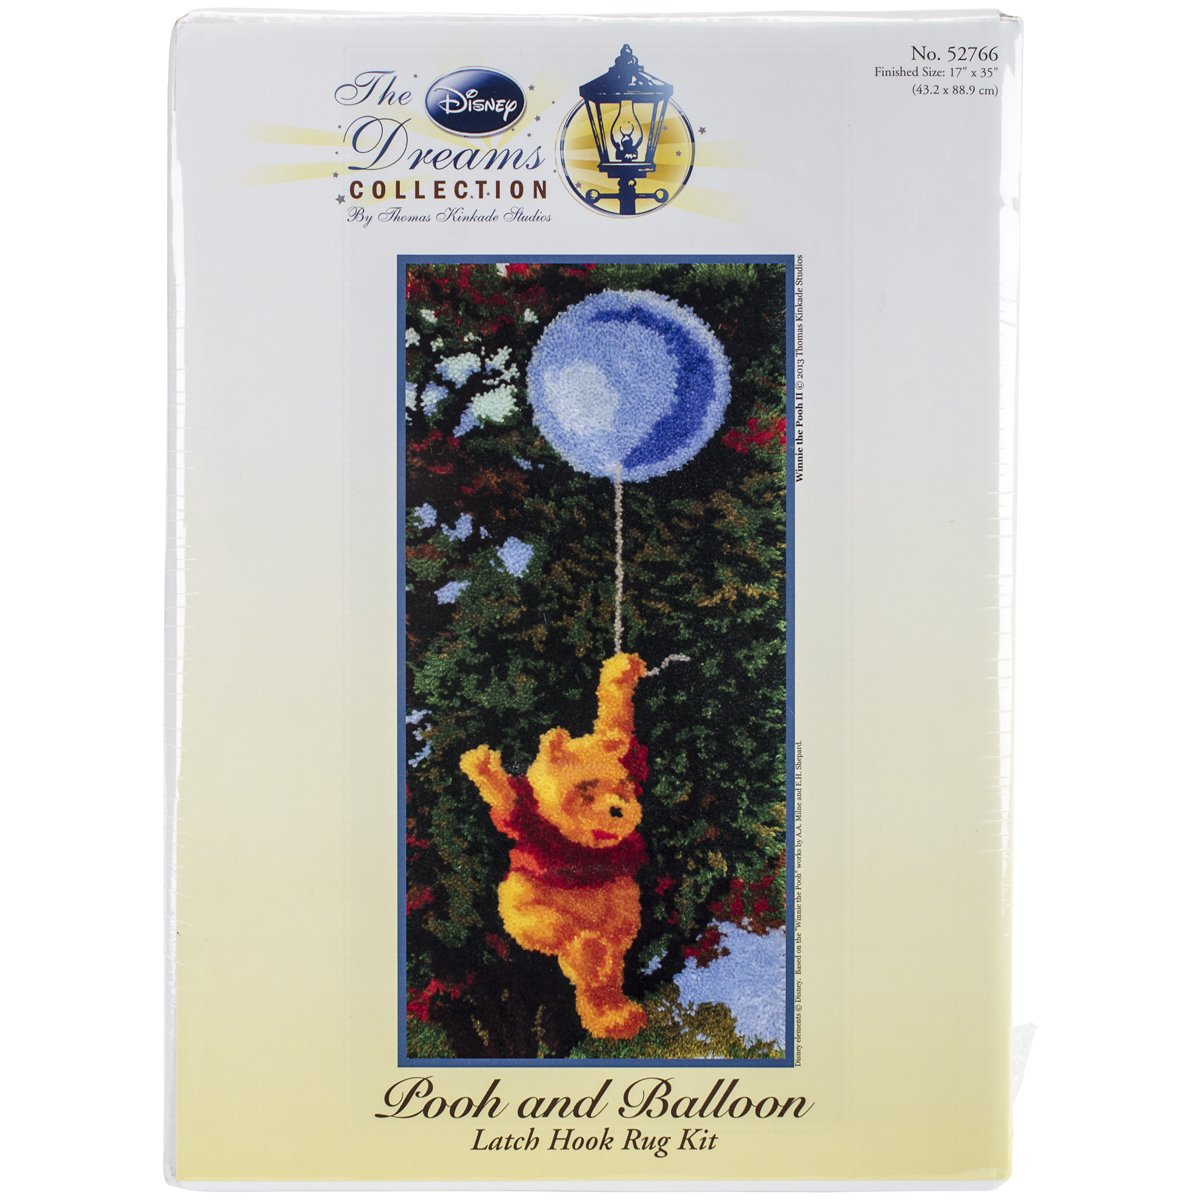 M.C.G. Textiles 52766 Pooh and Balloon Rug Disney Dreams Collection by Thomas Kinkade Latch Hook Kit, 17 by 36-Inch Notions